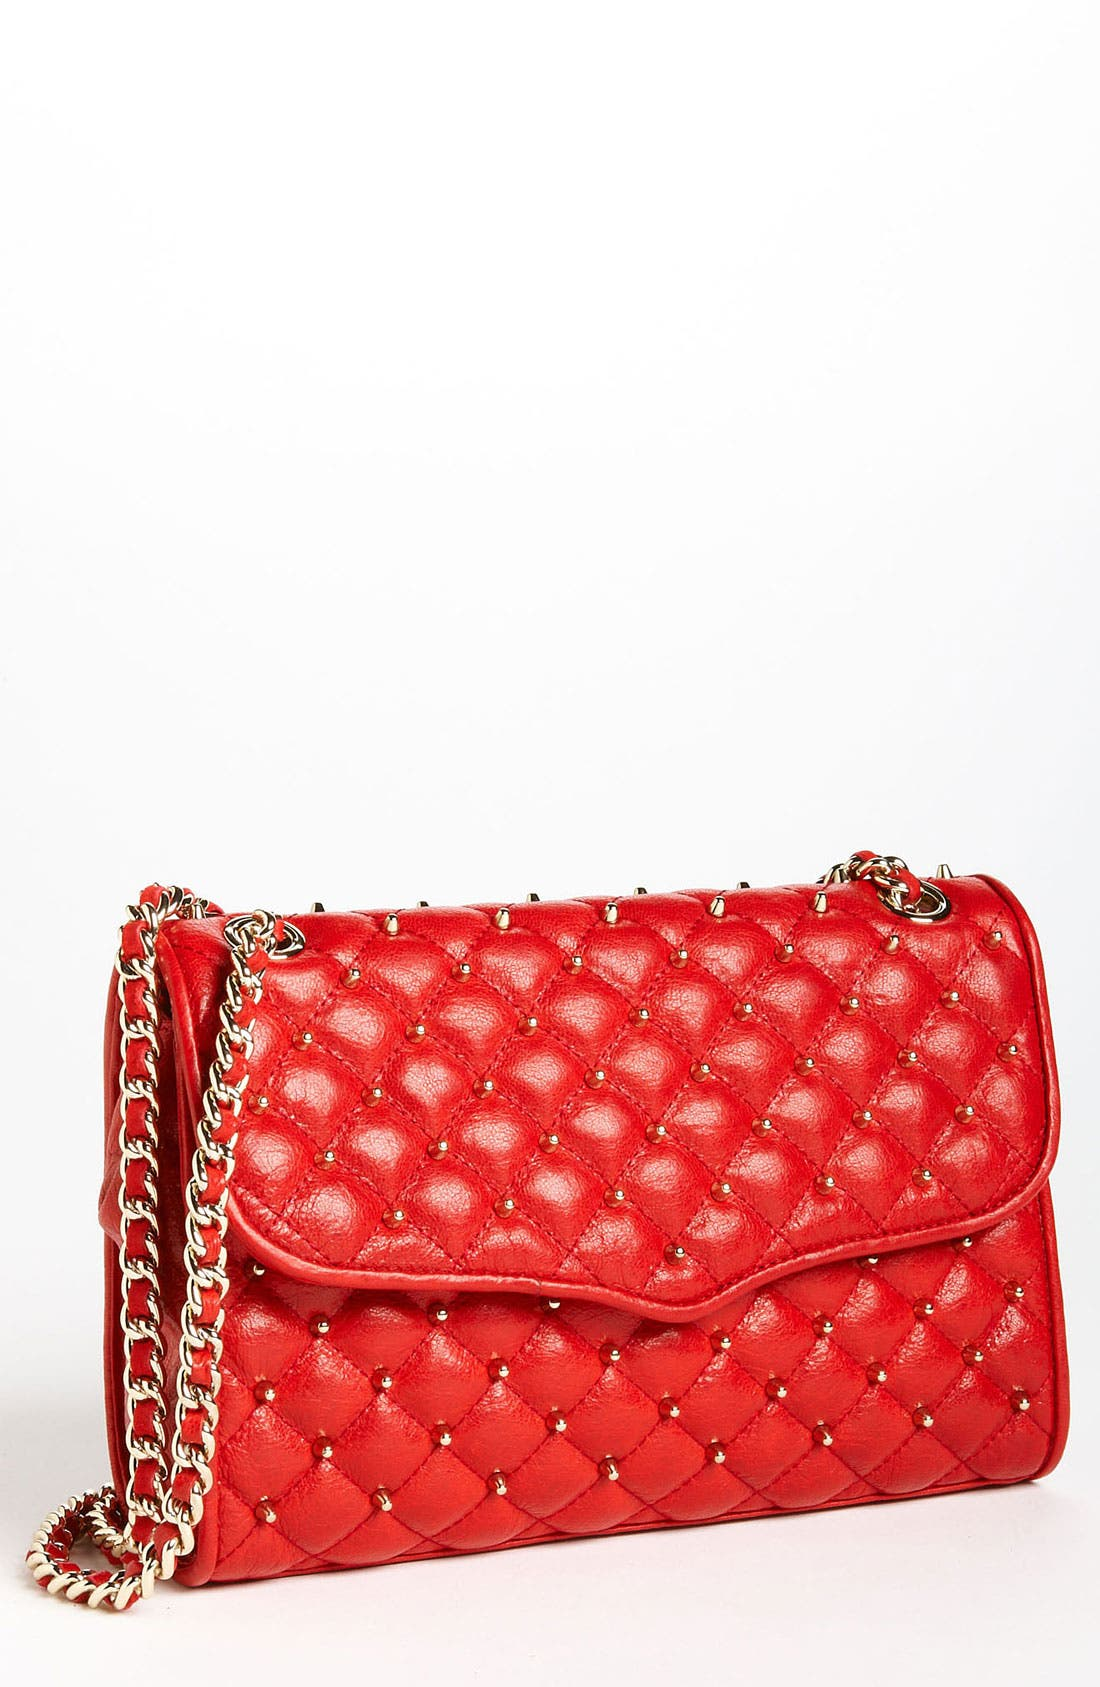 Alternate Image 1 Selected - Rebecca Minkoff 'Affair' Double Chain Shoulder Bag